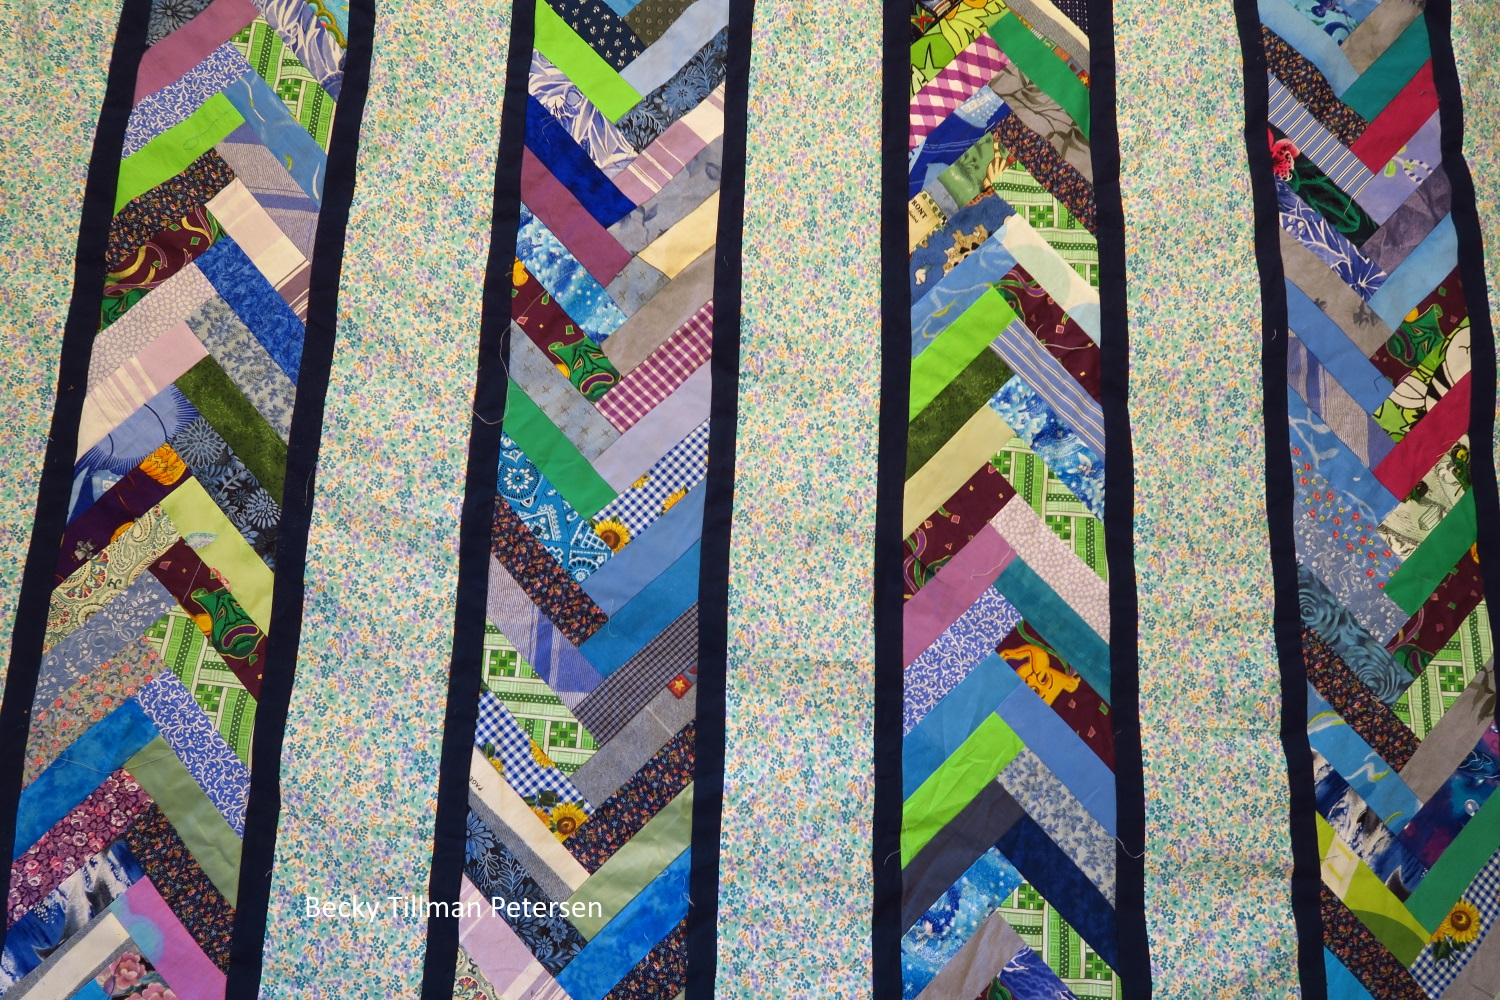 close up of the patterns of the columns, which reveals a multi-color in the blue dot columns. The scraps appear rando, while maintaining the order of pointing upward or downward.